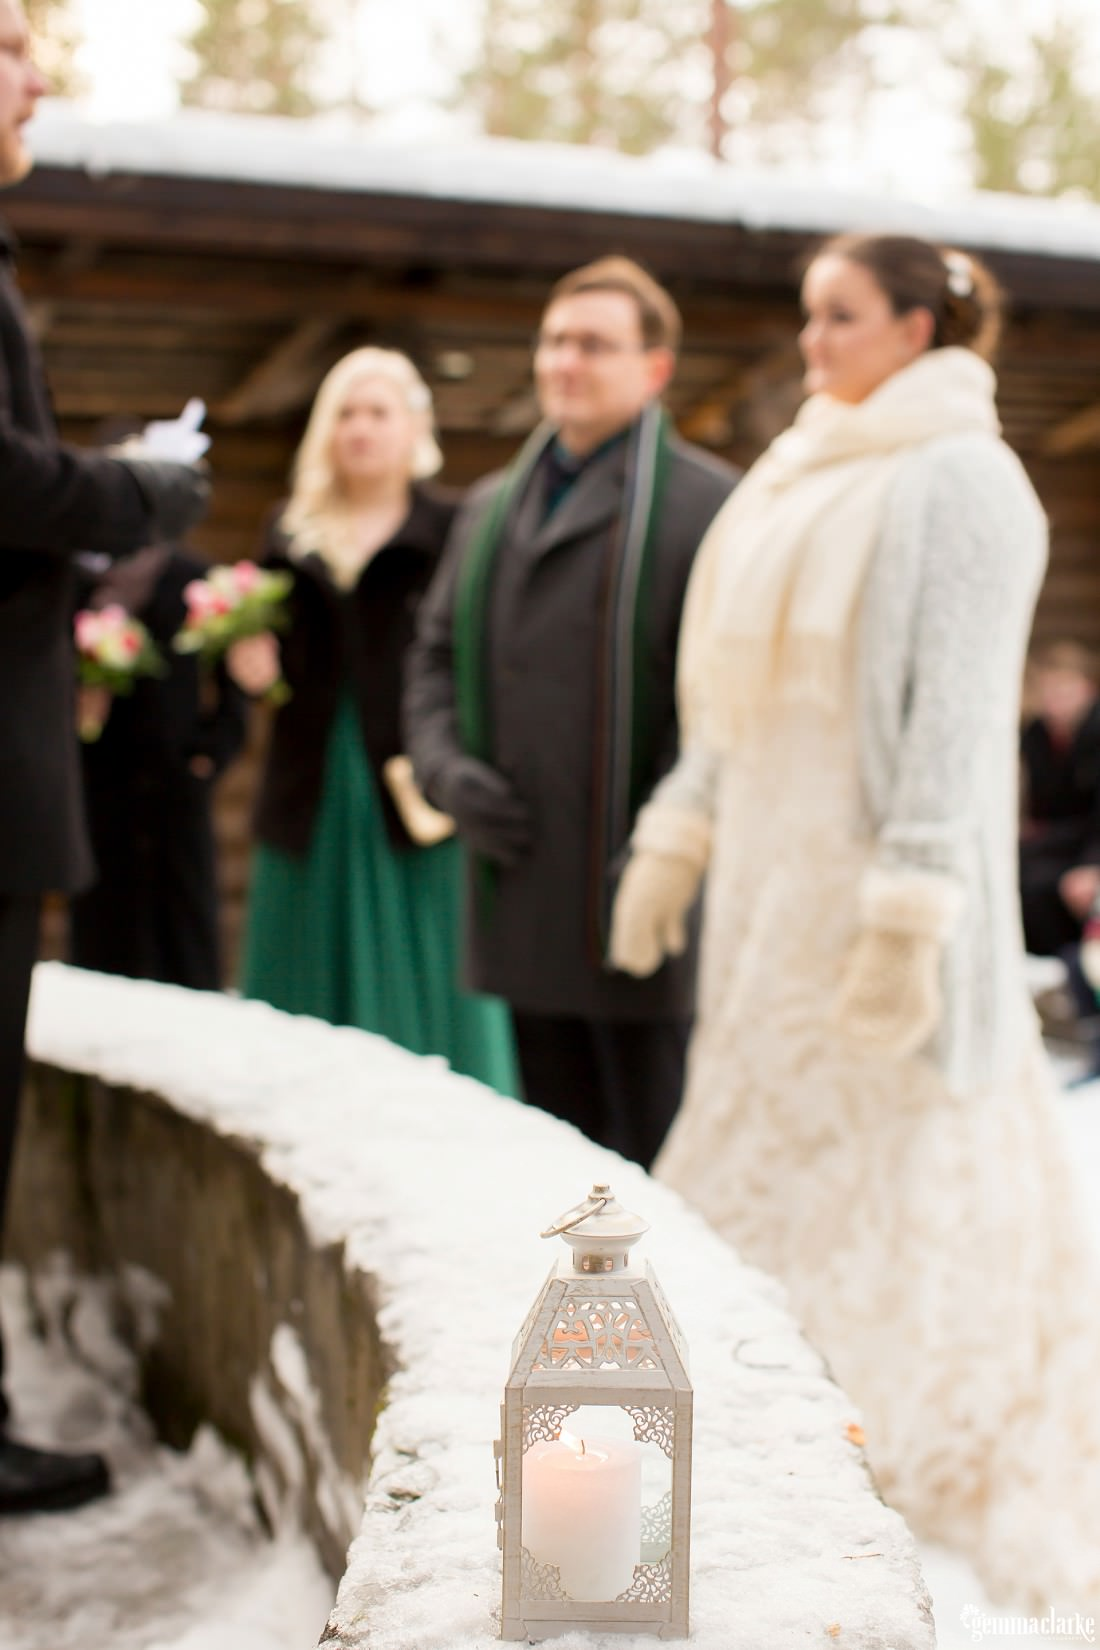 A lantern on a snowy ledge in the foreground with a bride and groom in the background